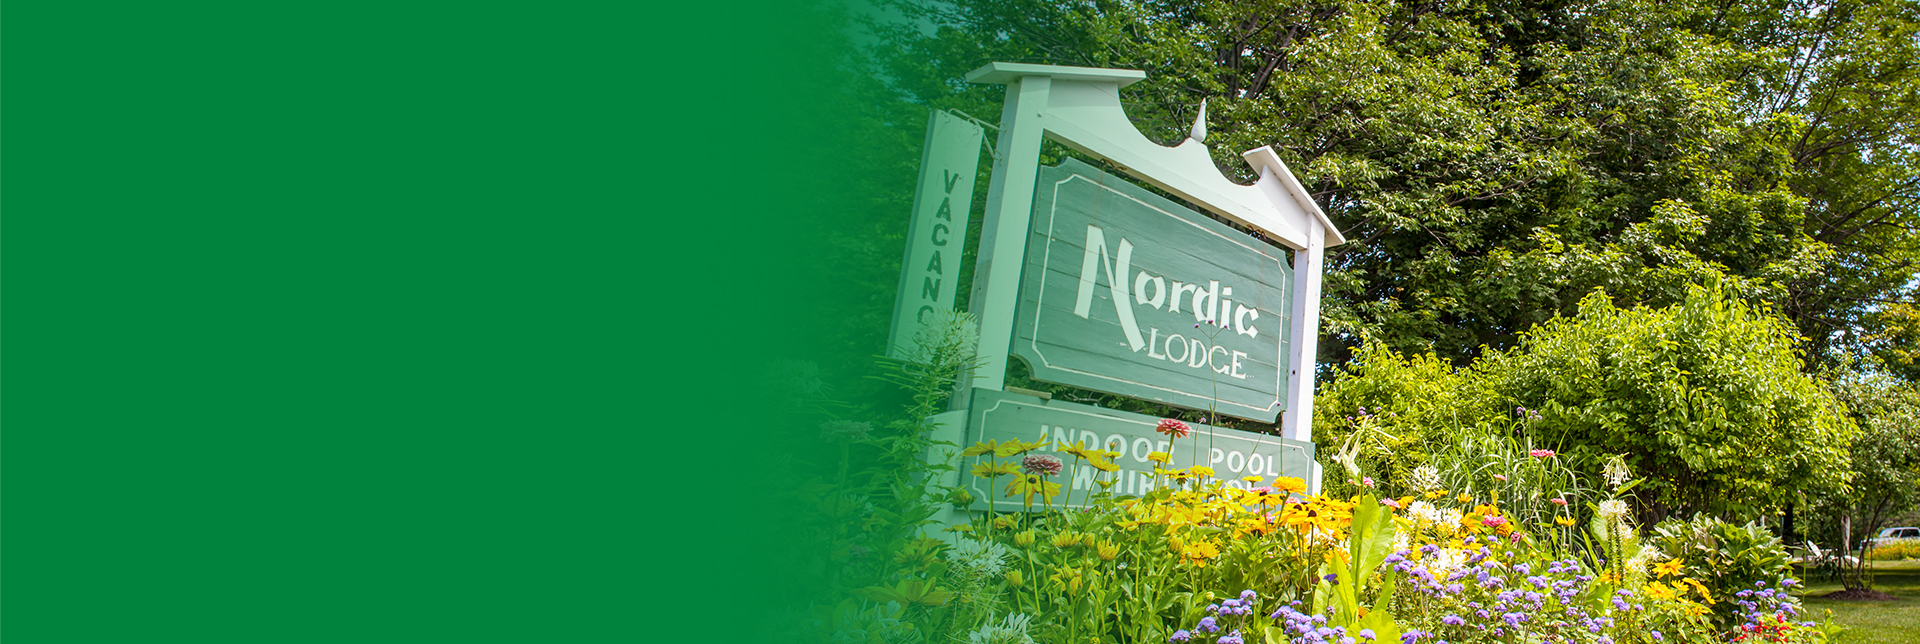 accommodations & Nordic Lodge - Door County - Sister Bay WI